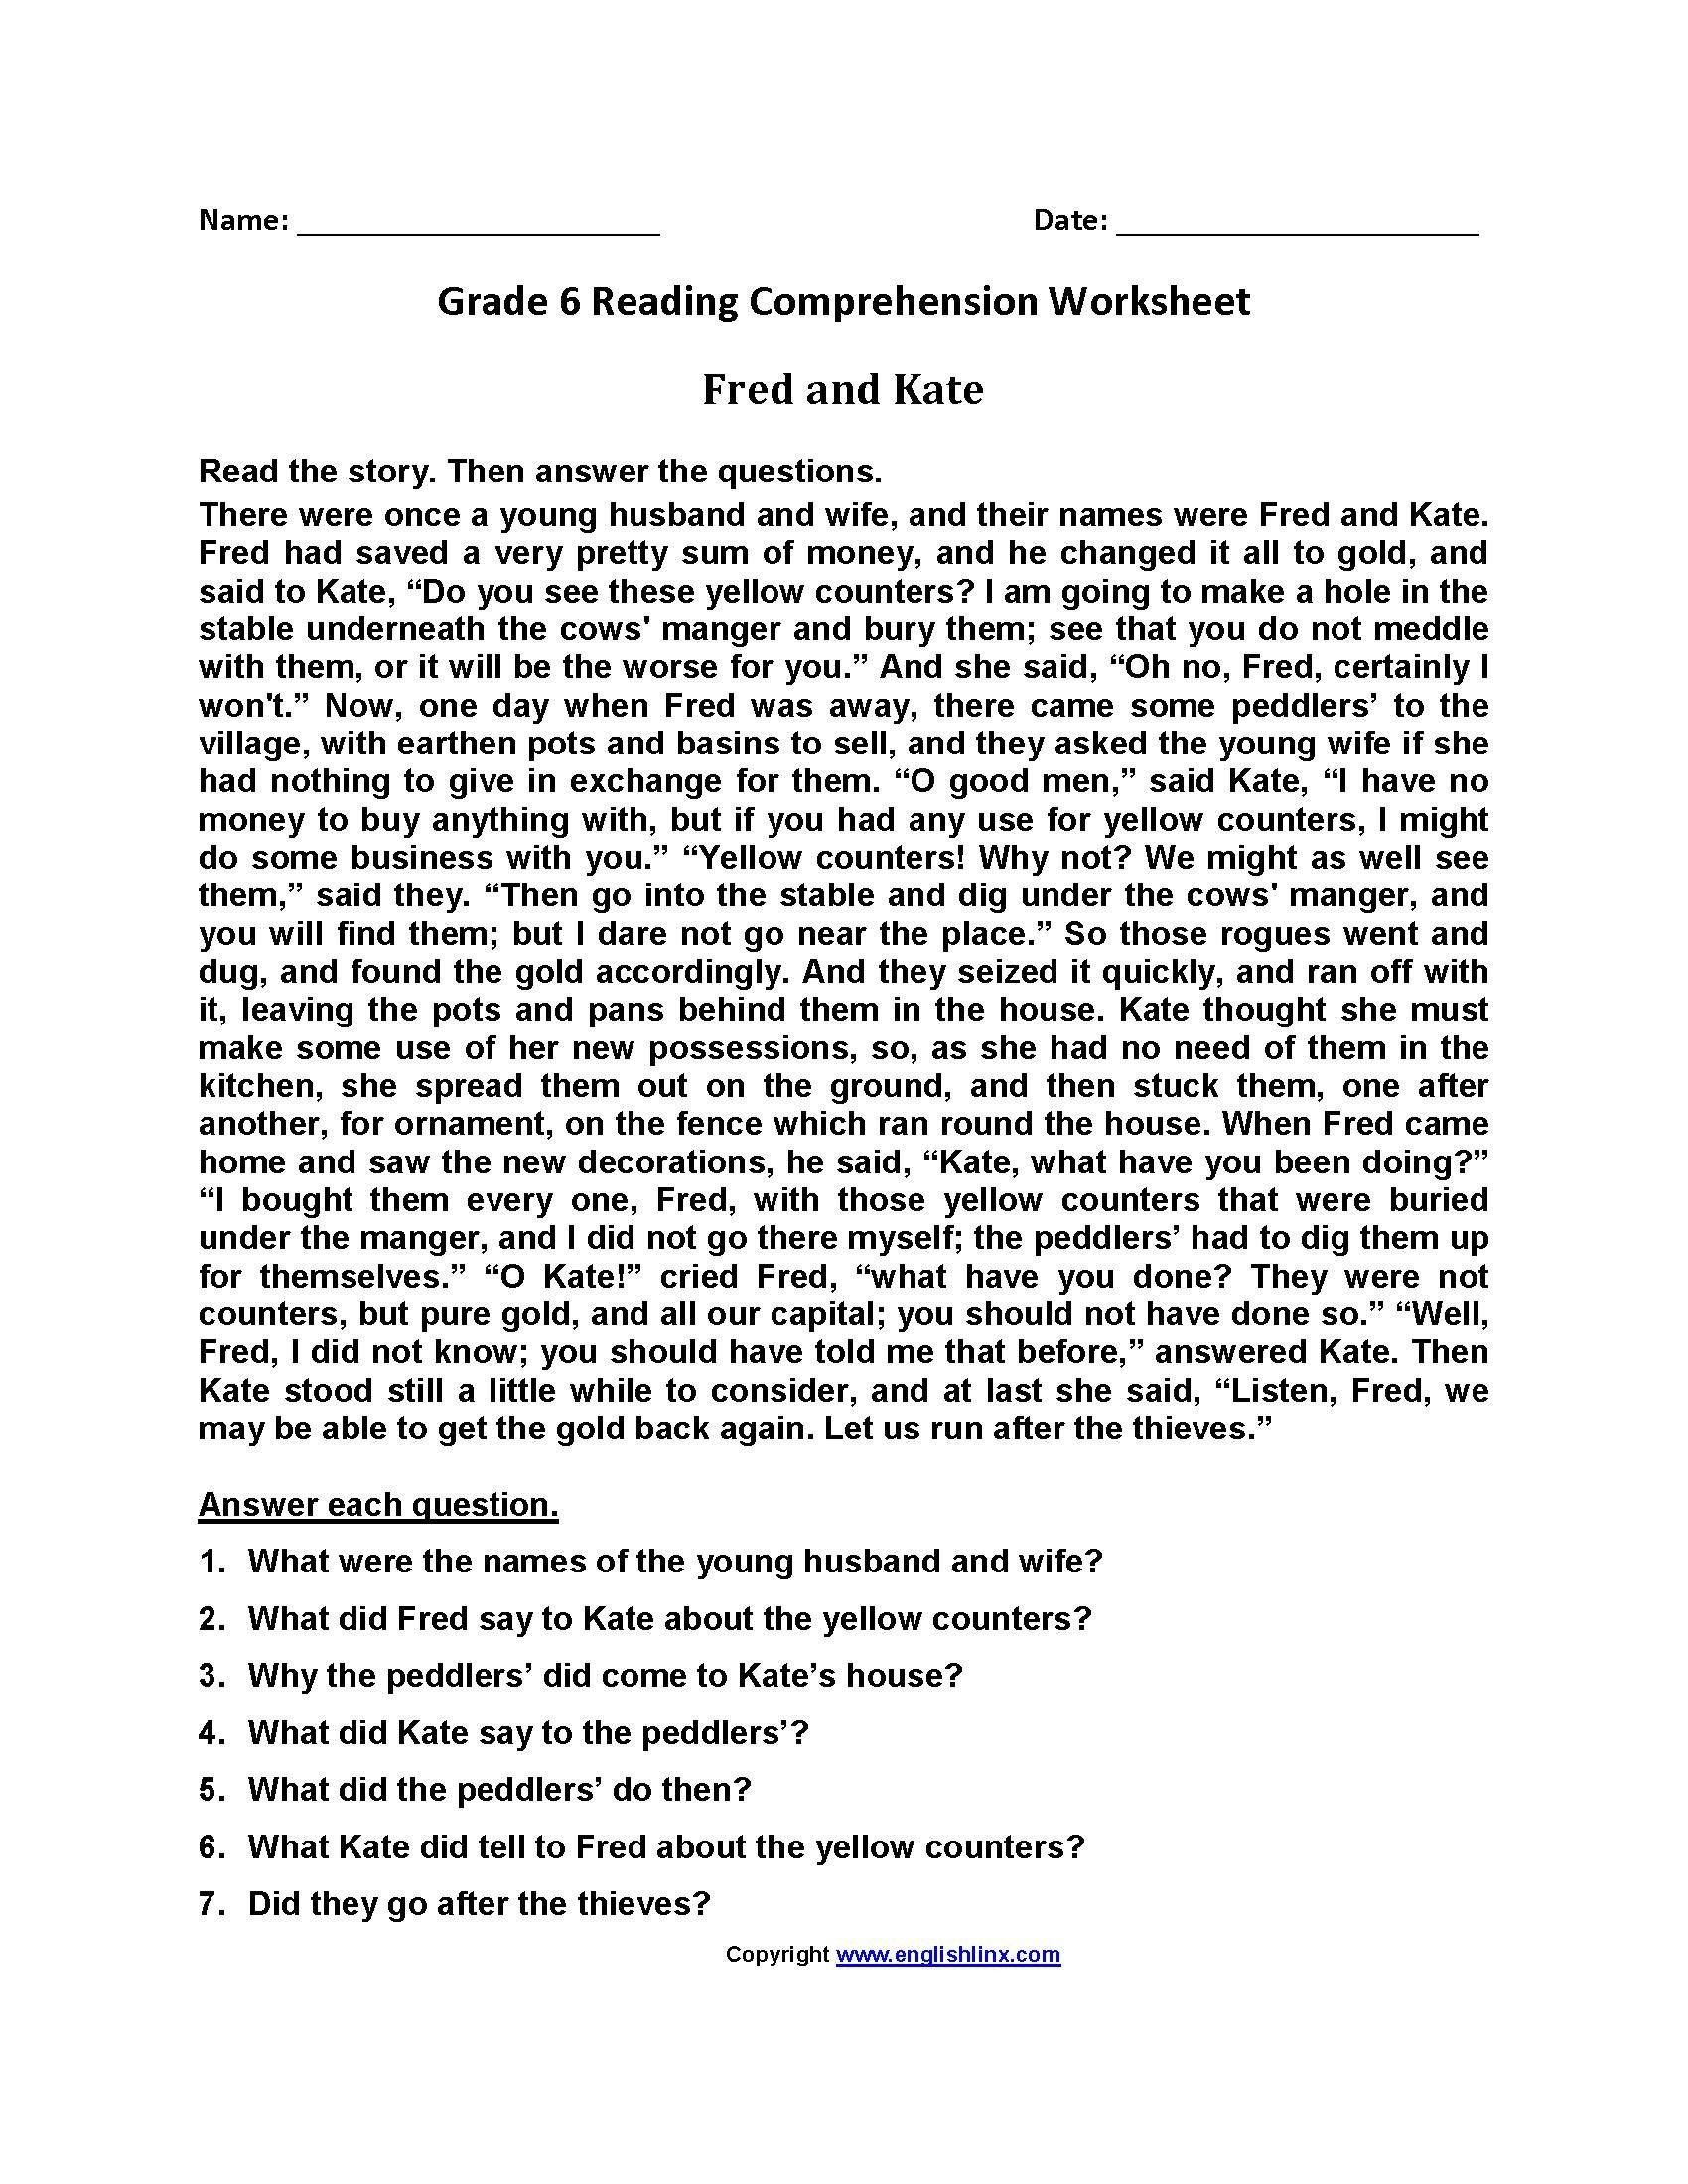 Comprehension Worksheets 6th Grade Free Printable Reading Prehension Worksheets for 6th